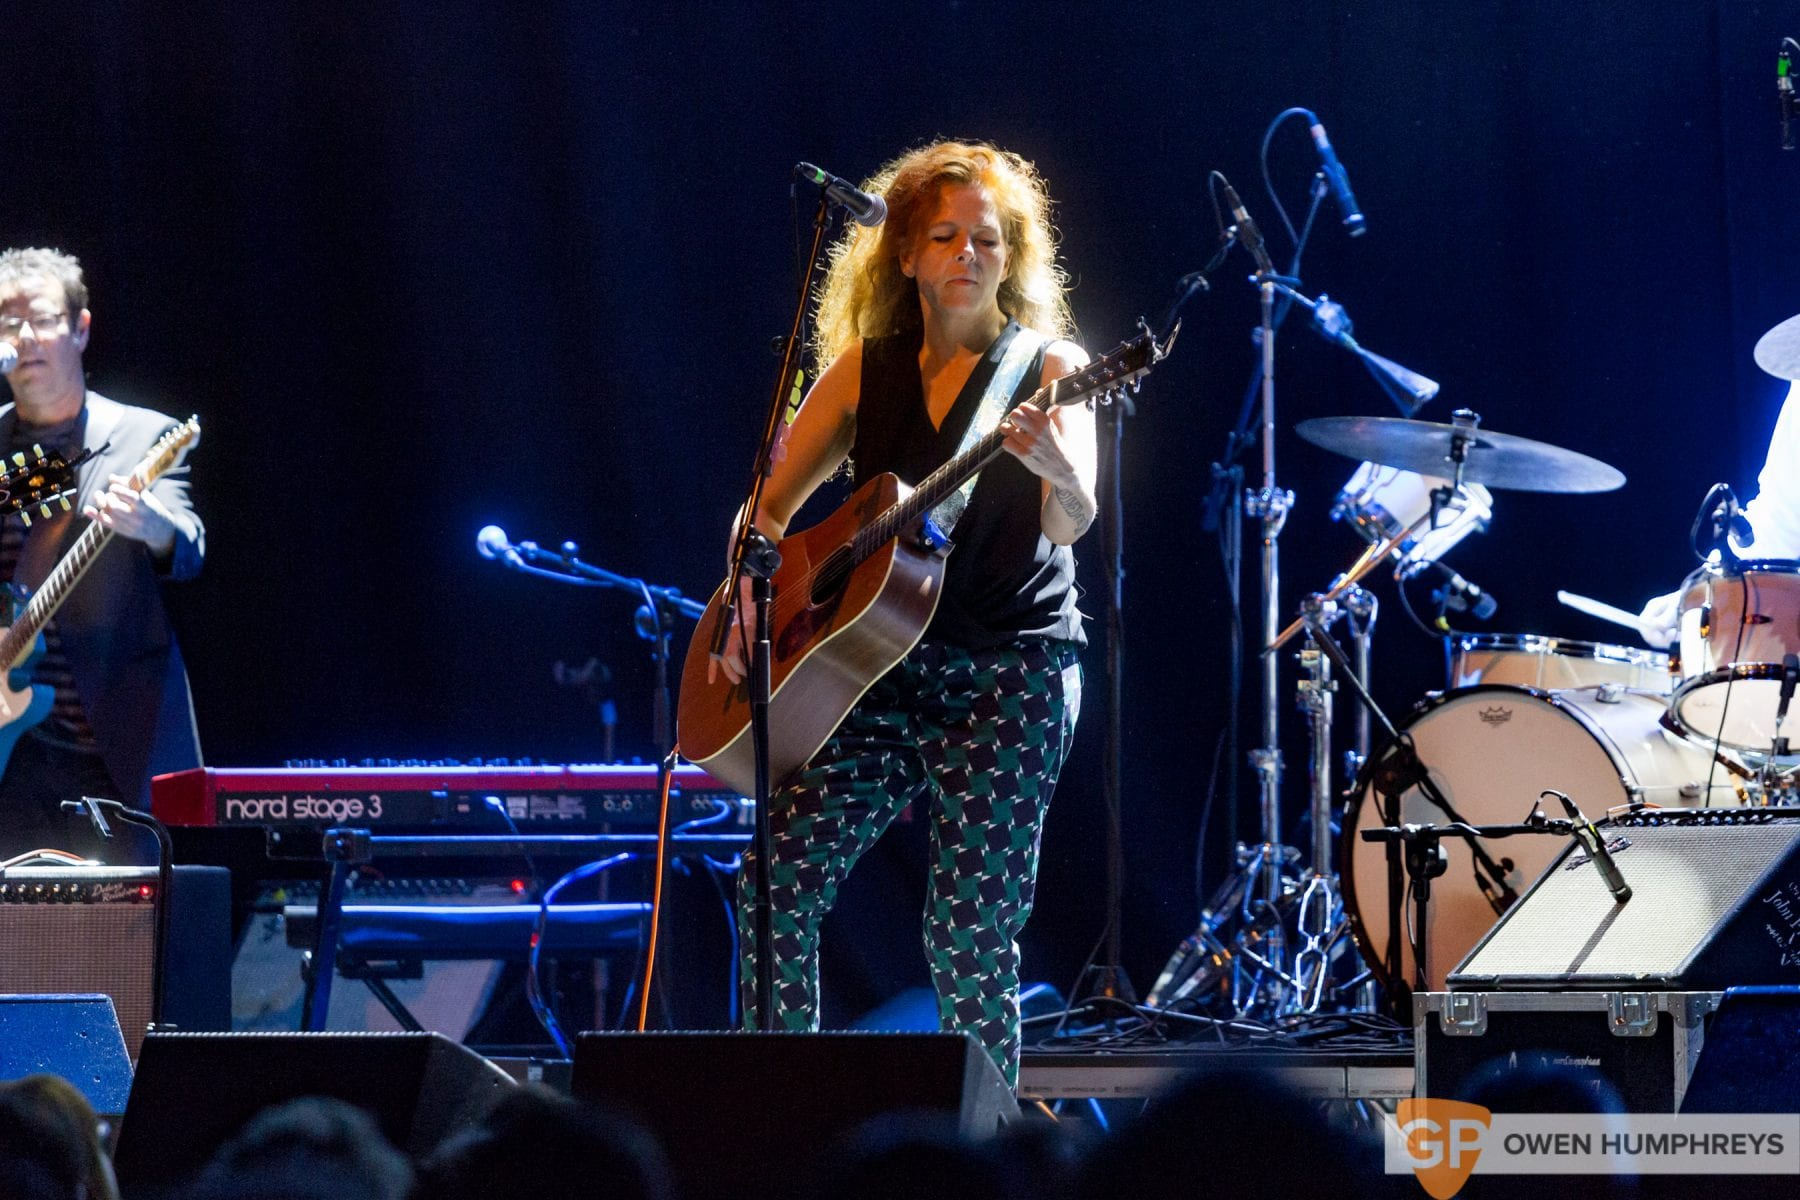 Neko Case at Vicar Street. Photo by Owen Humphreys www.owen.ie